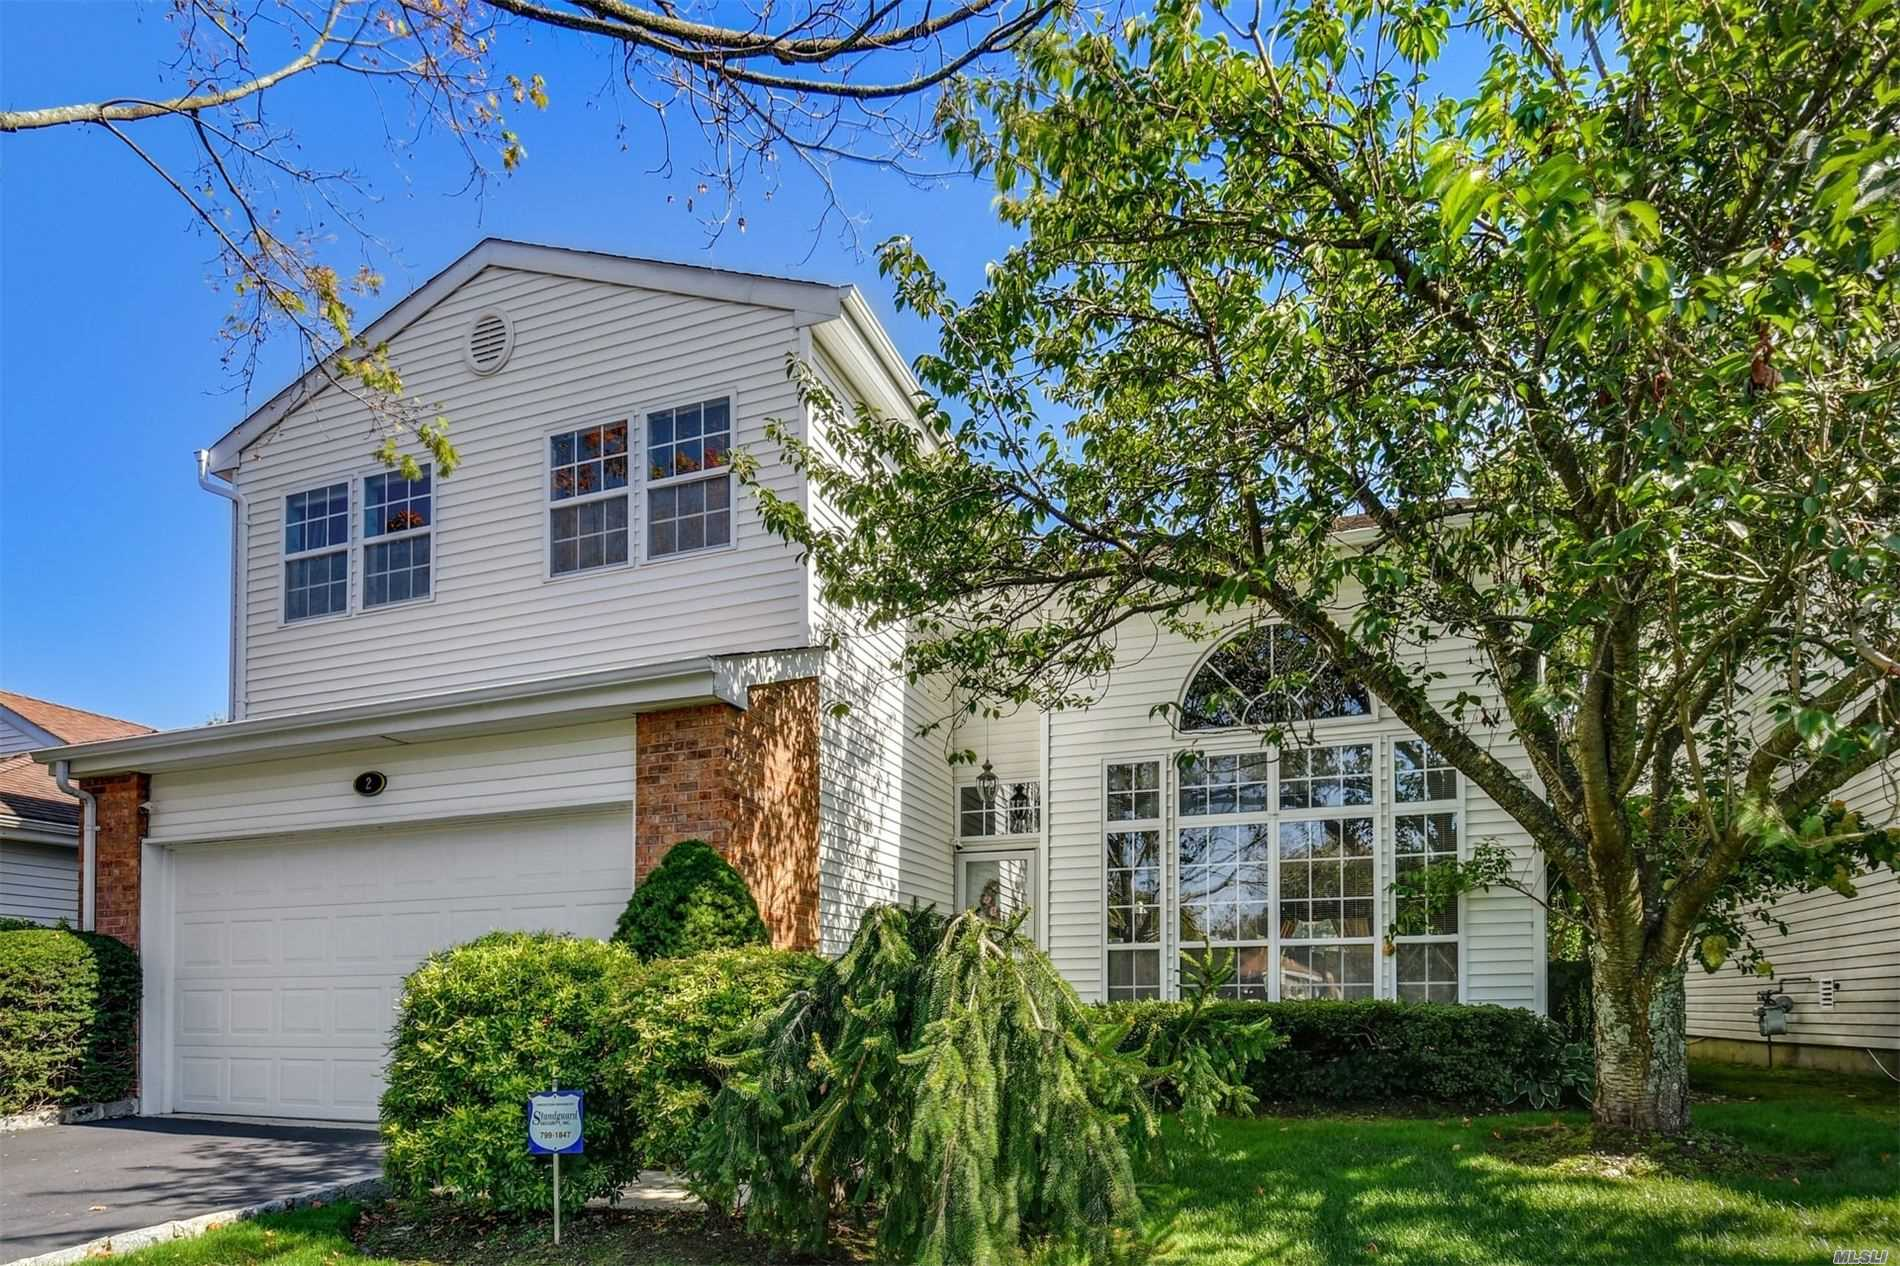 Property for sale at 2 Hamlet Drive, Commack NY 11725, Commack,  New York 11725